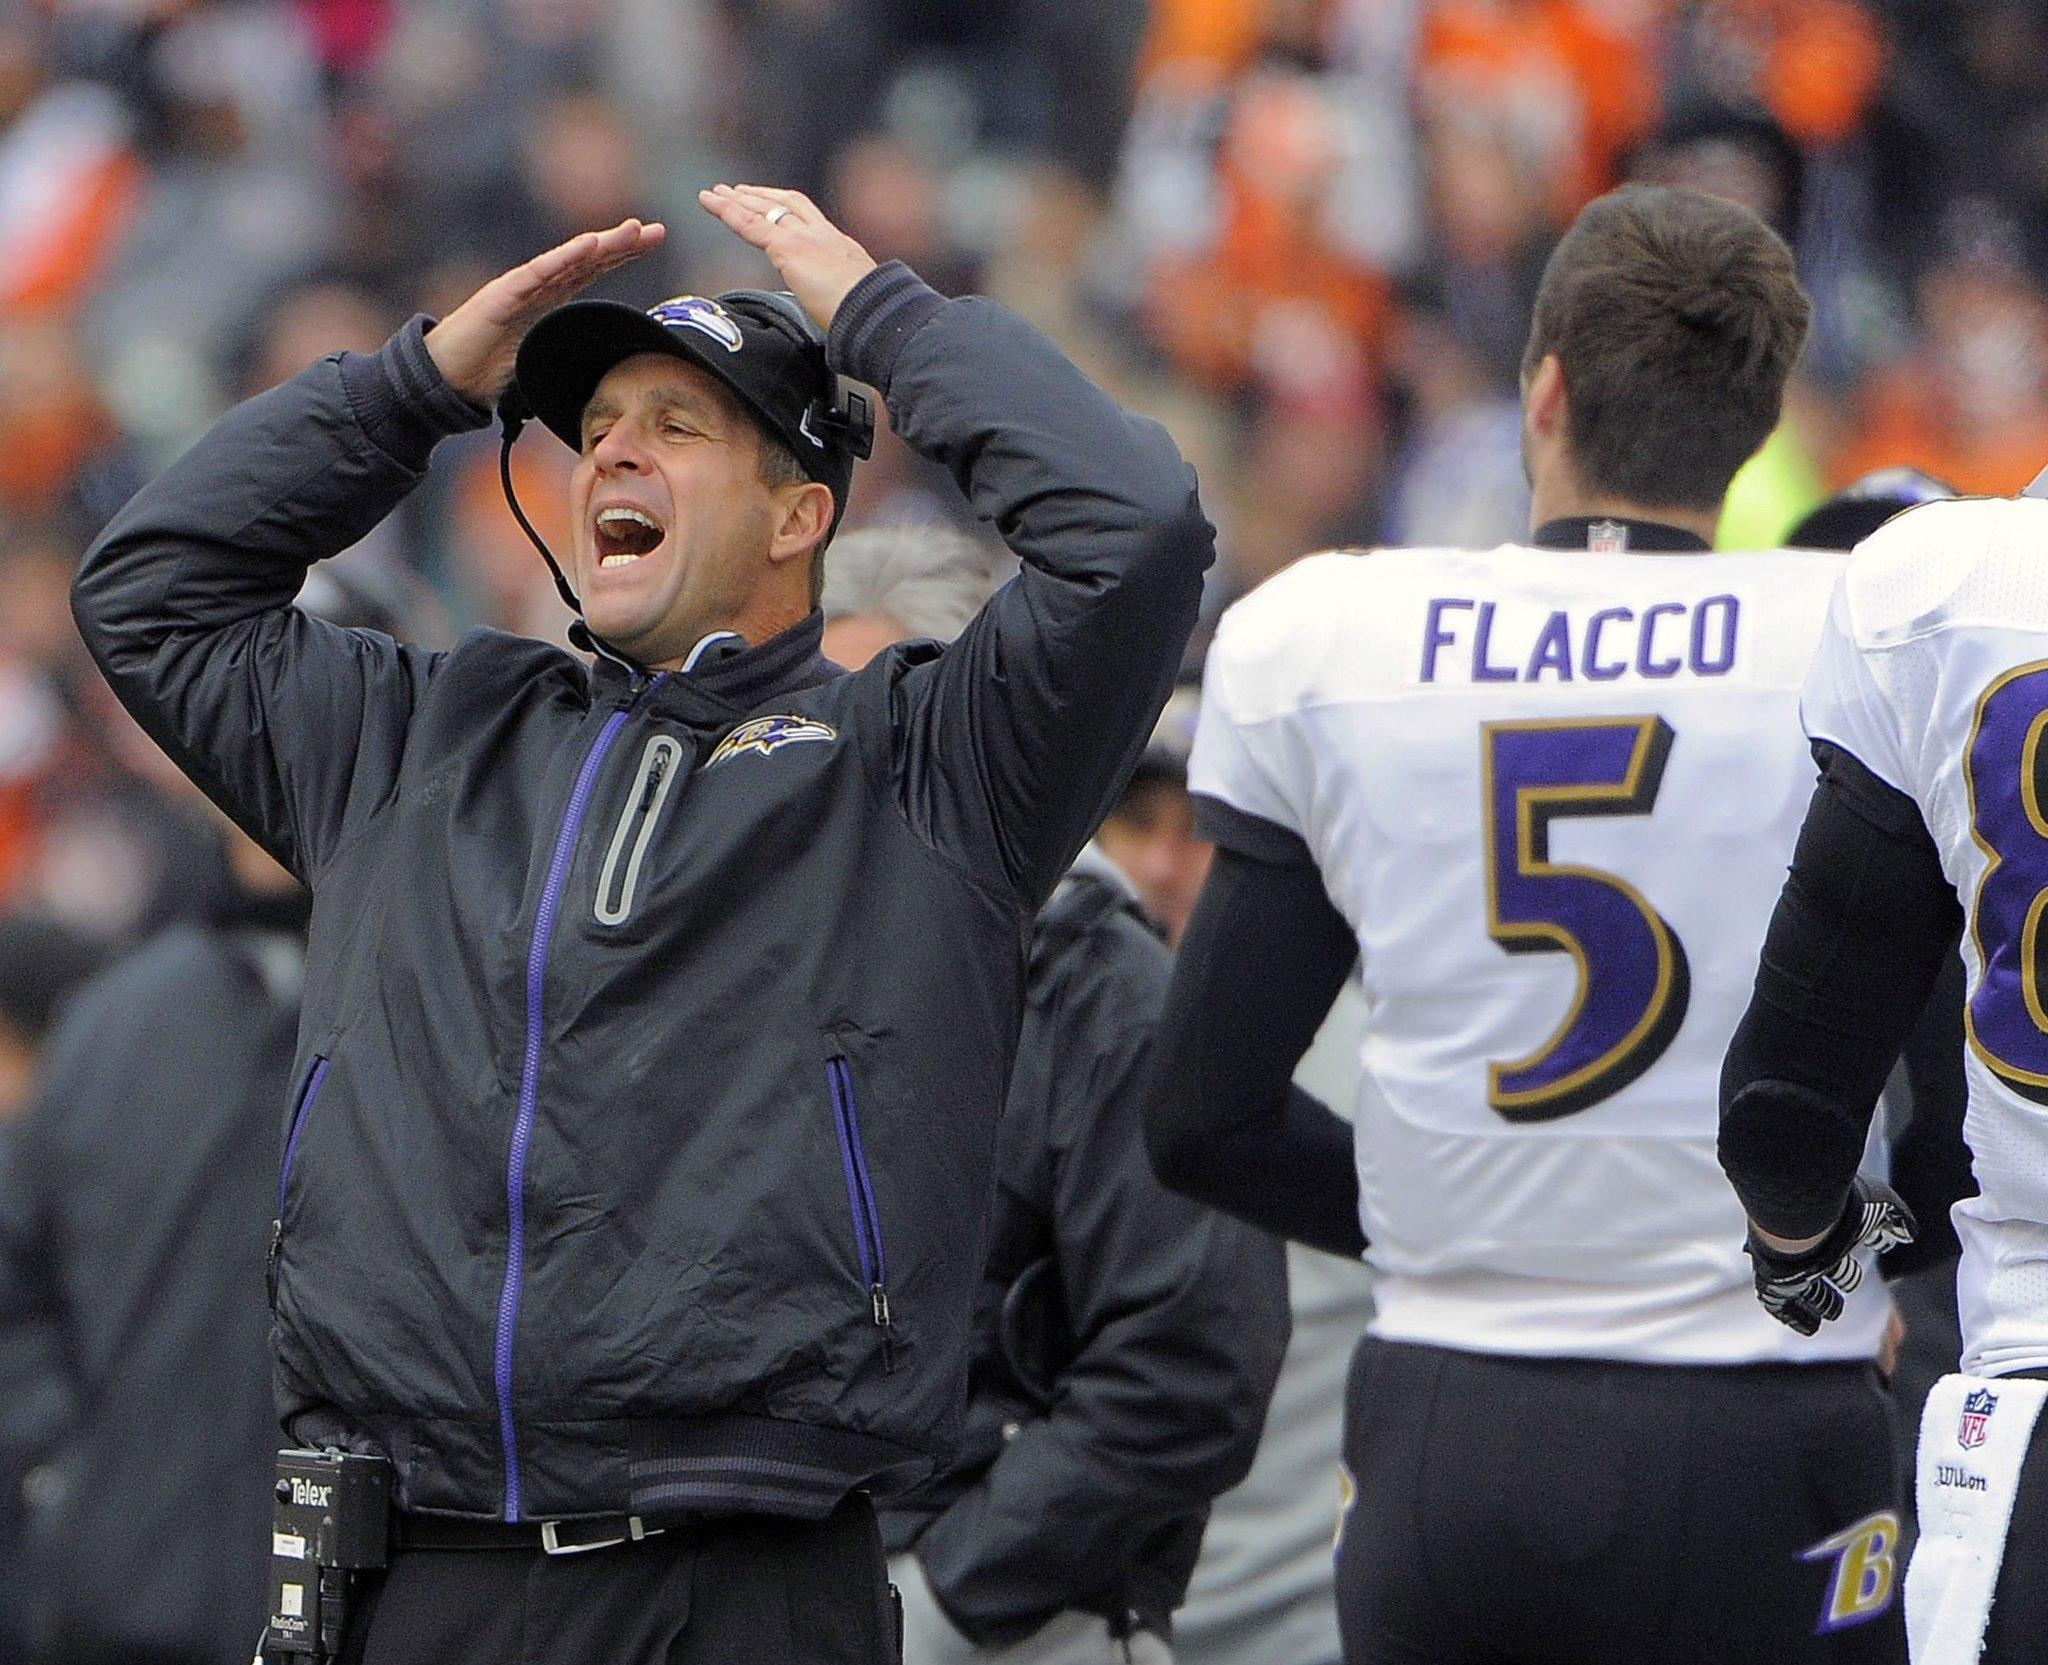 Ravens coach John Harbaugh reacts in the first half against the Cincinnati Bengals.